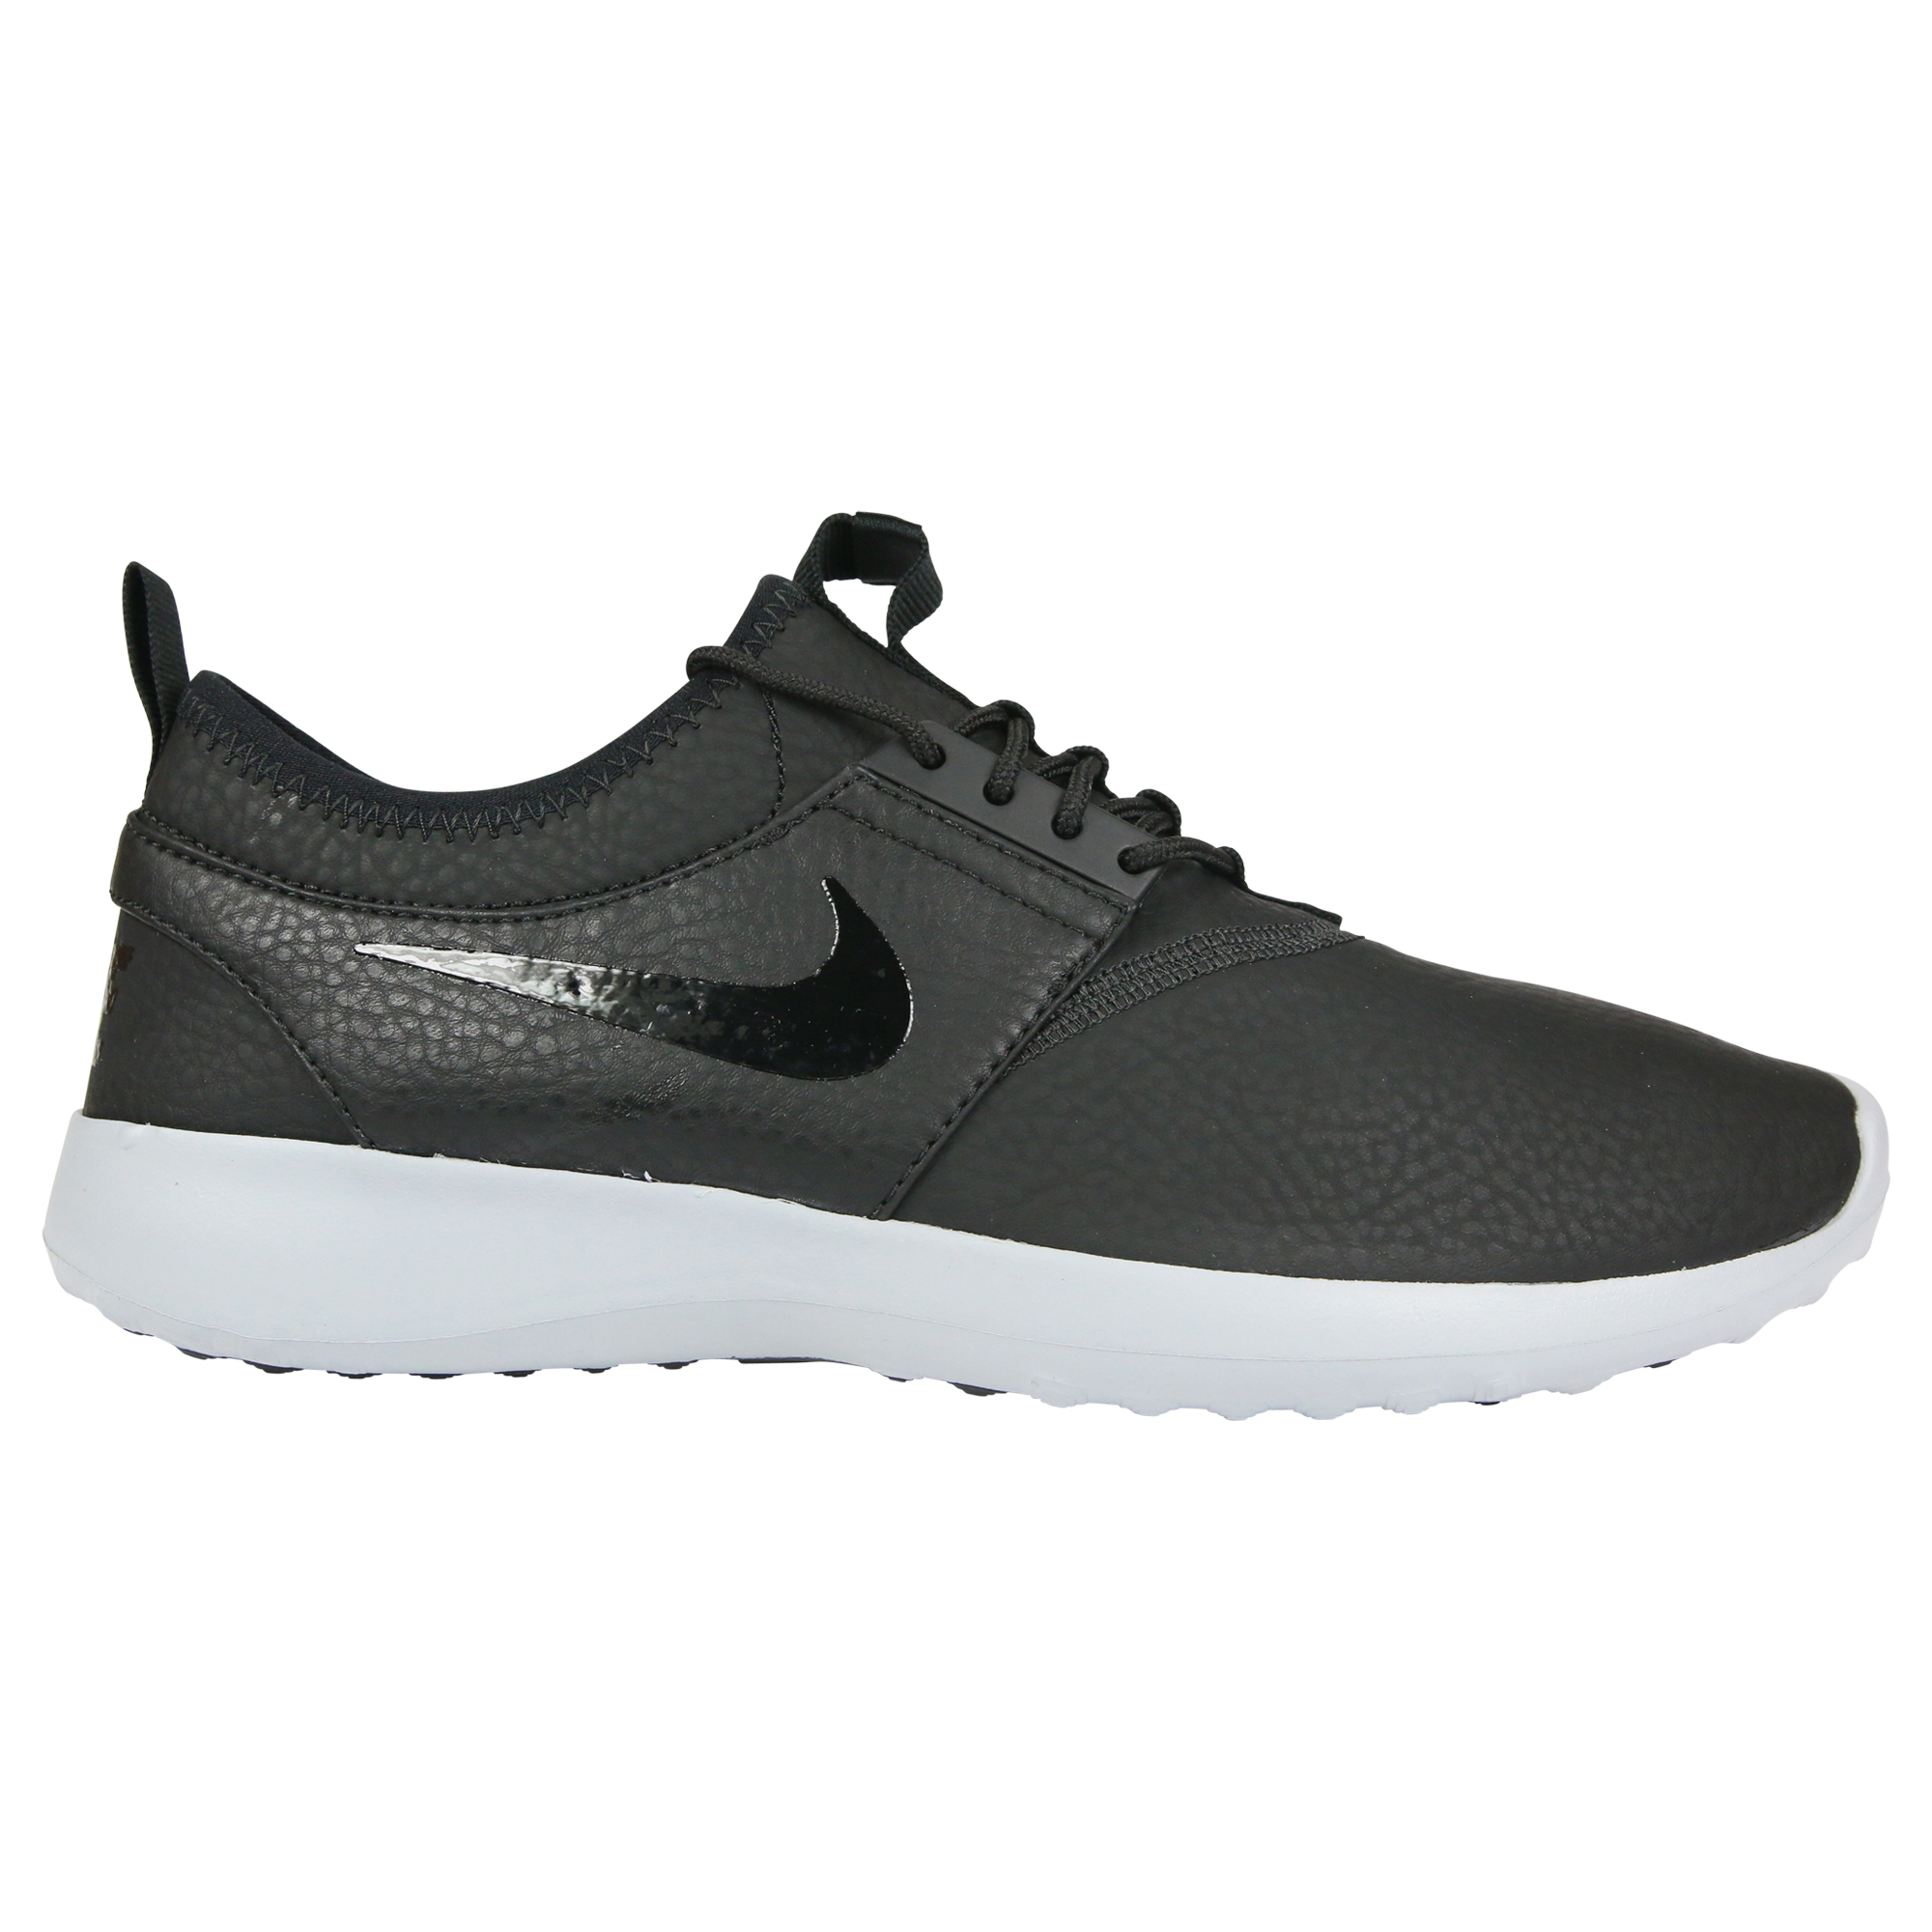 nike juvenate schuhe turnschuhe sneaker damen 724979 ebay. Black Bedroom Furniture Sets. Home Design Ideas